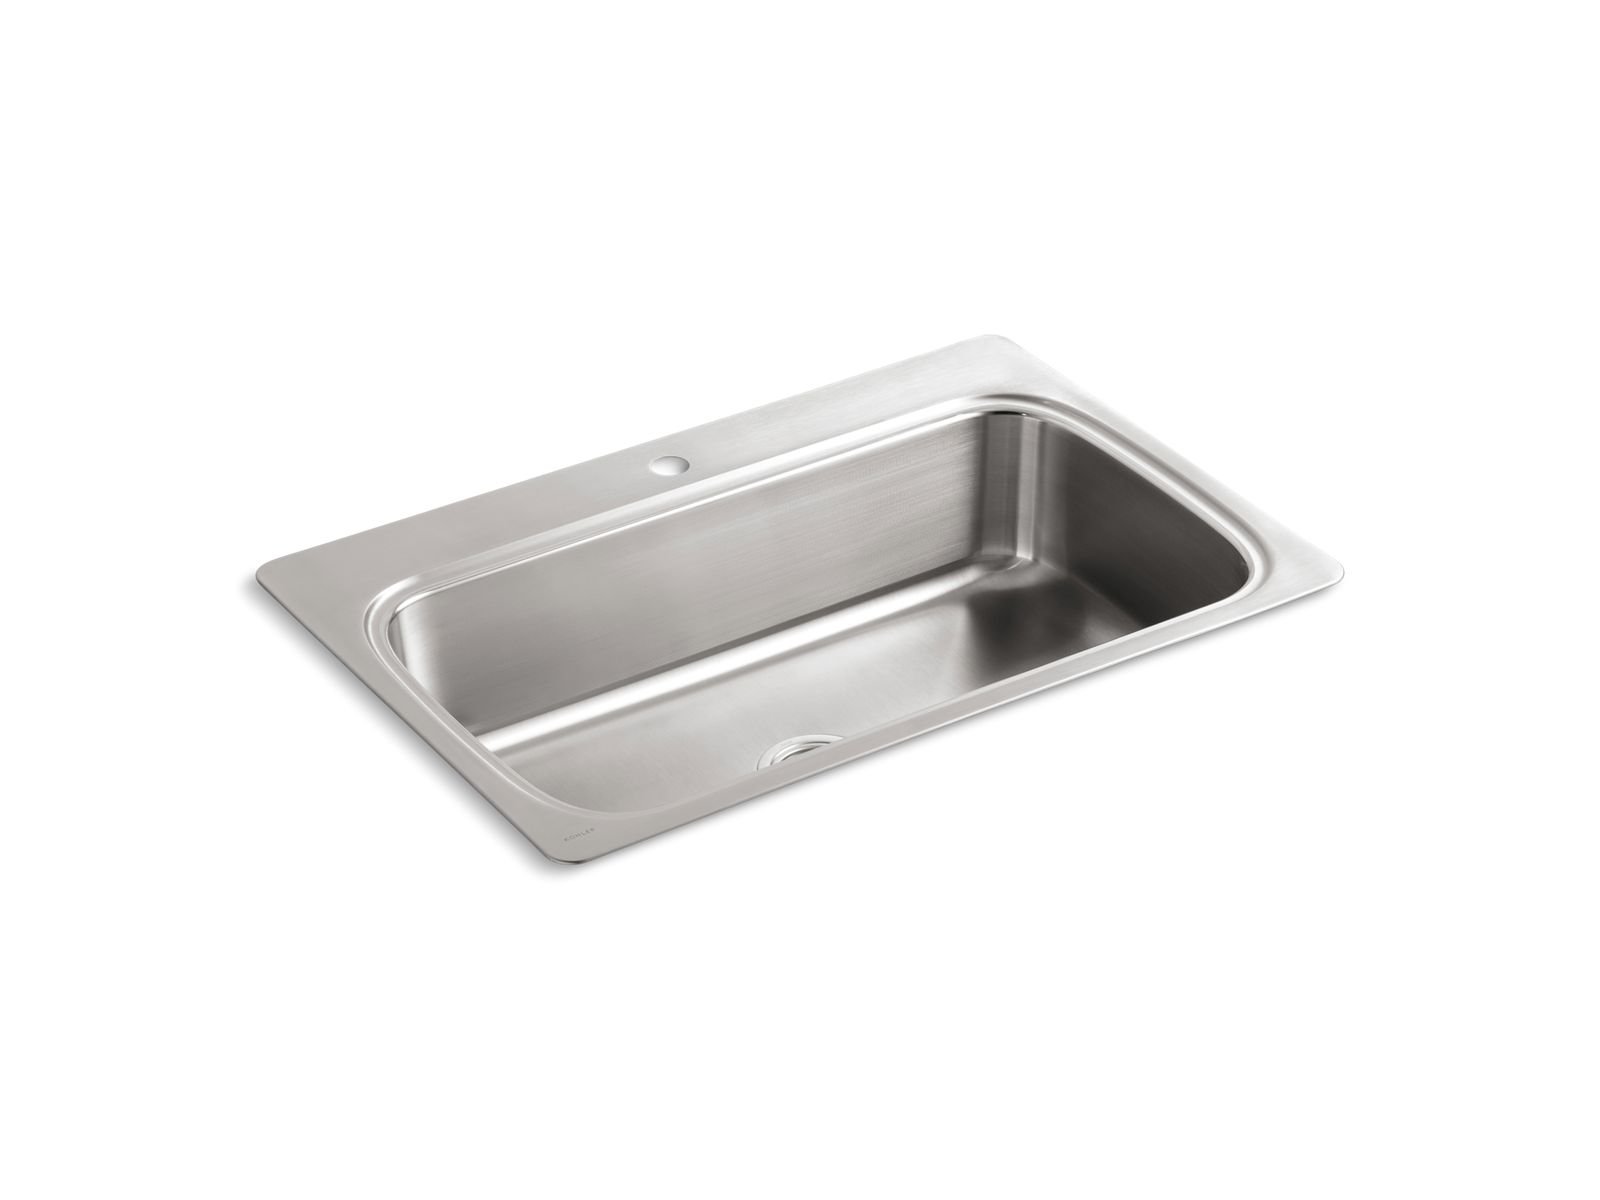 K 3373 1 | Verse Top Mount Kitchen Sink With Single Faucet Hole | KOHLER